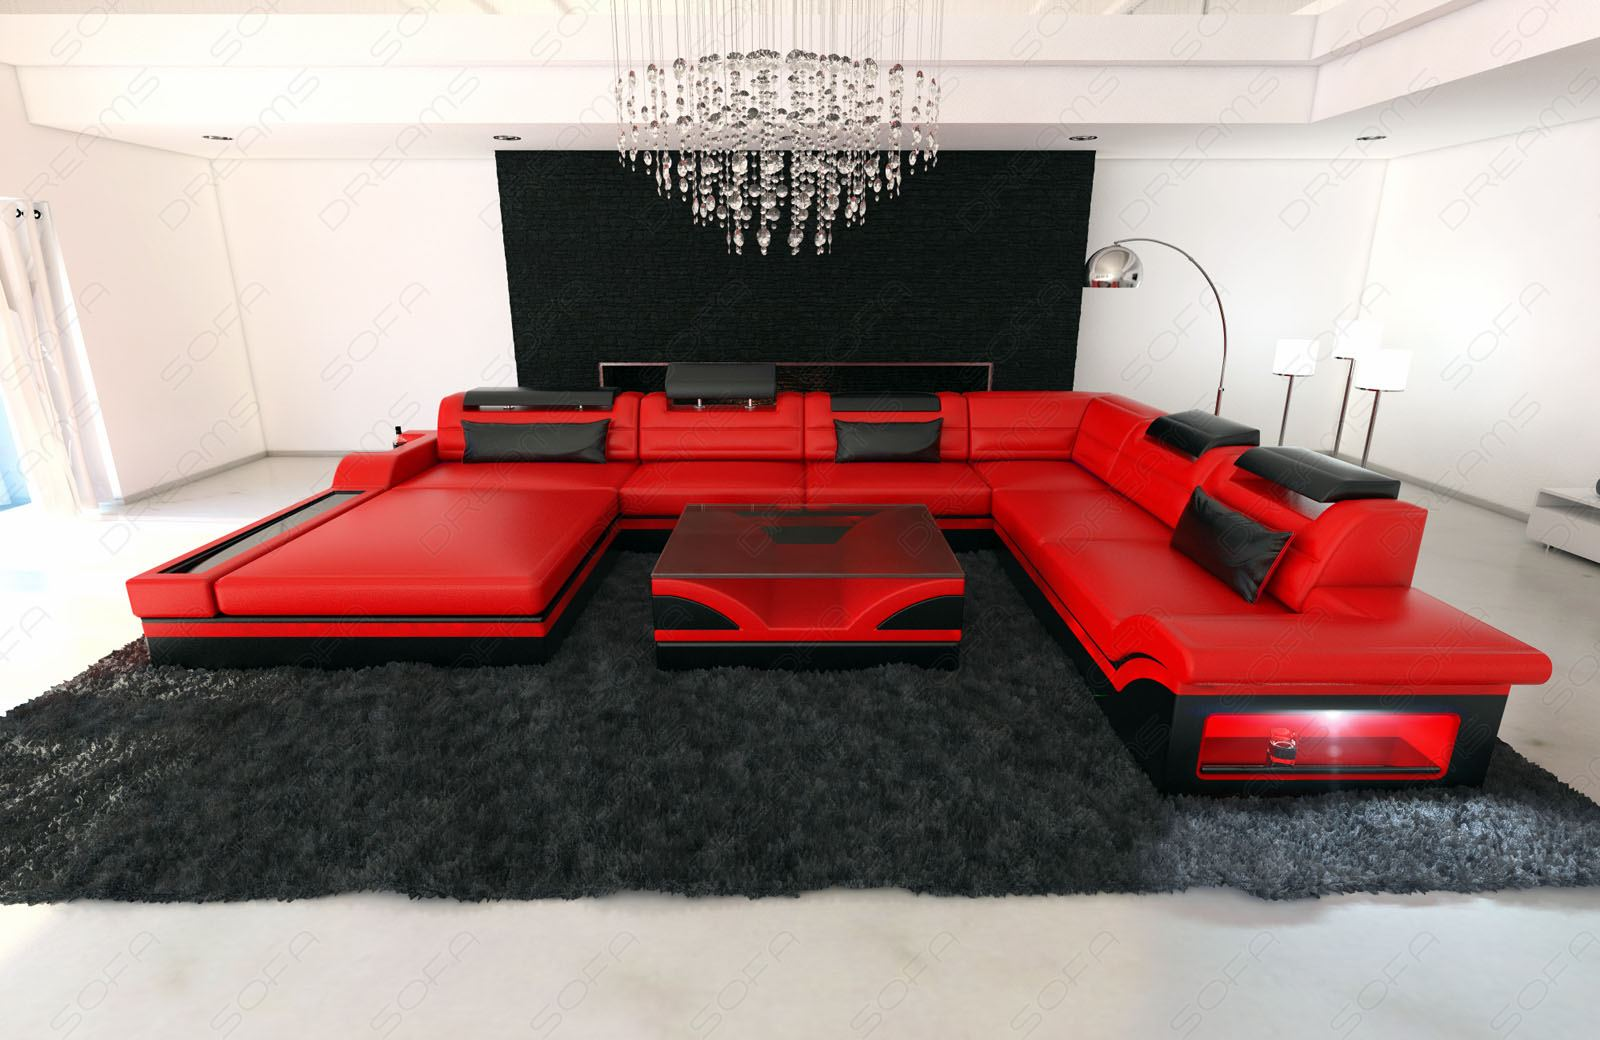 Design sectional sofa mezzo xxl with led lights red black ebay Big sofa xxl wohnlandschaft